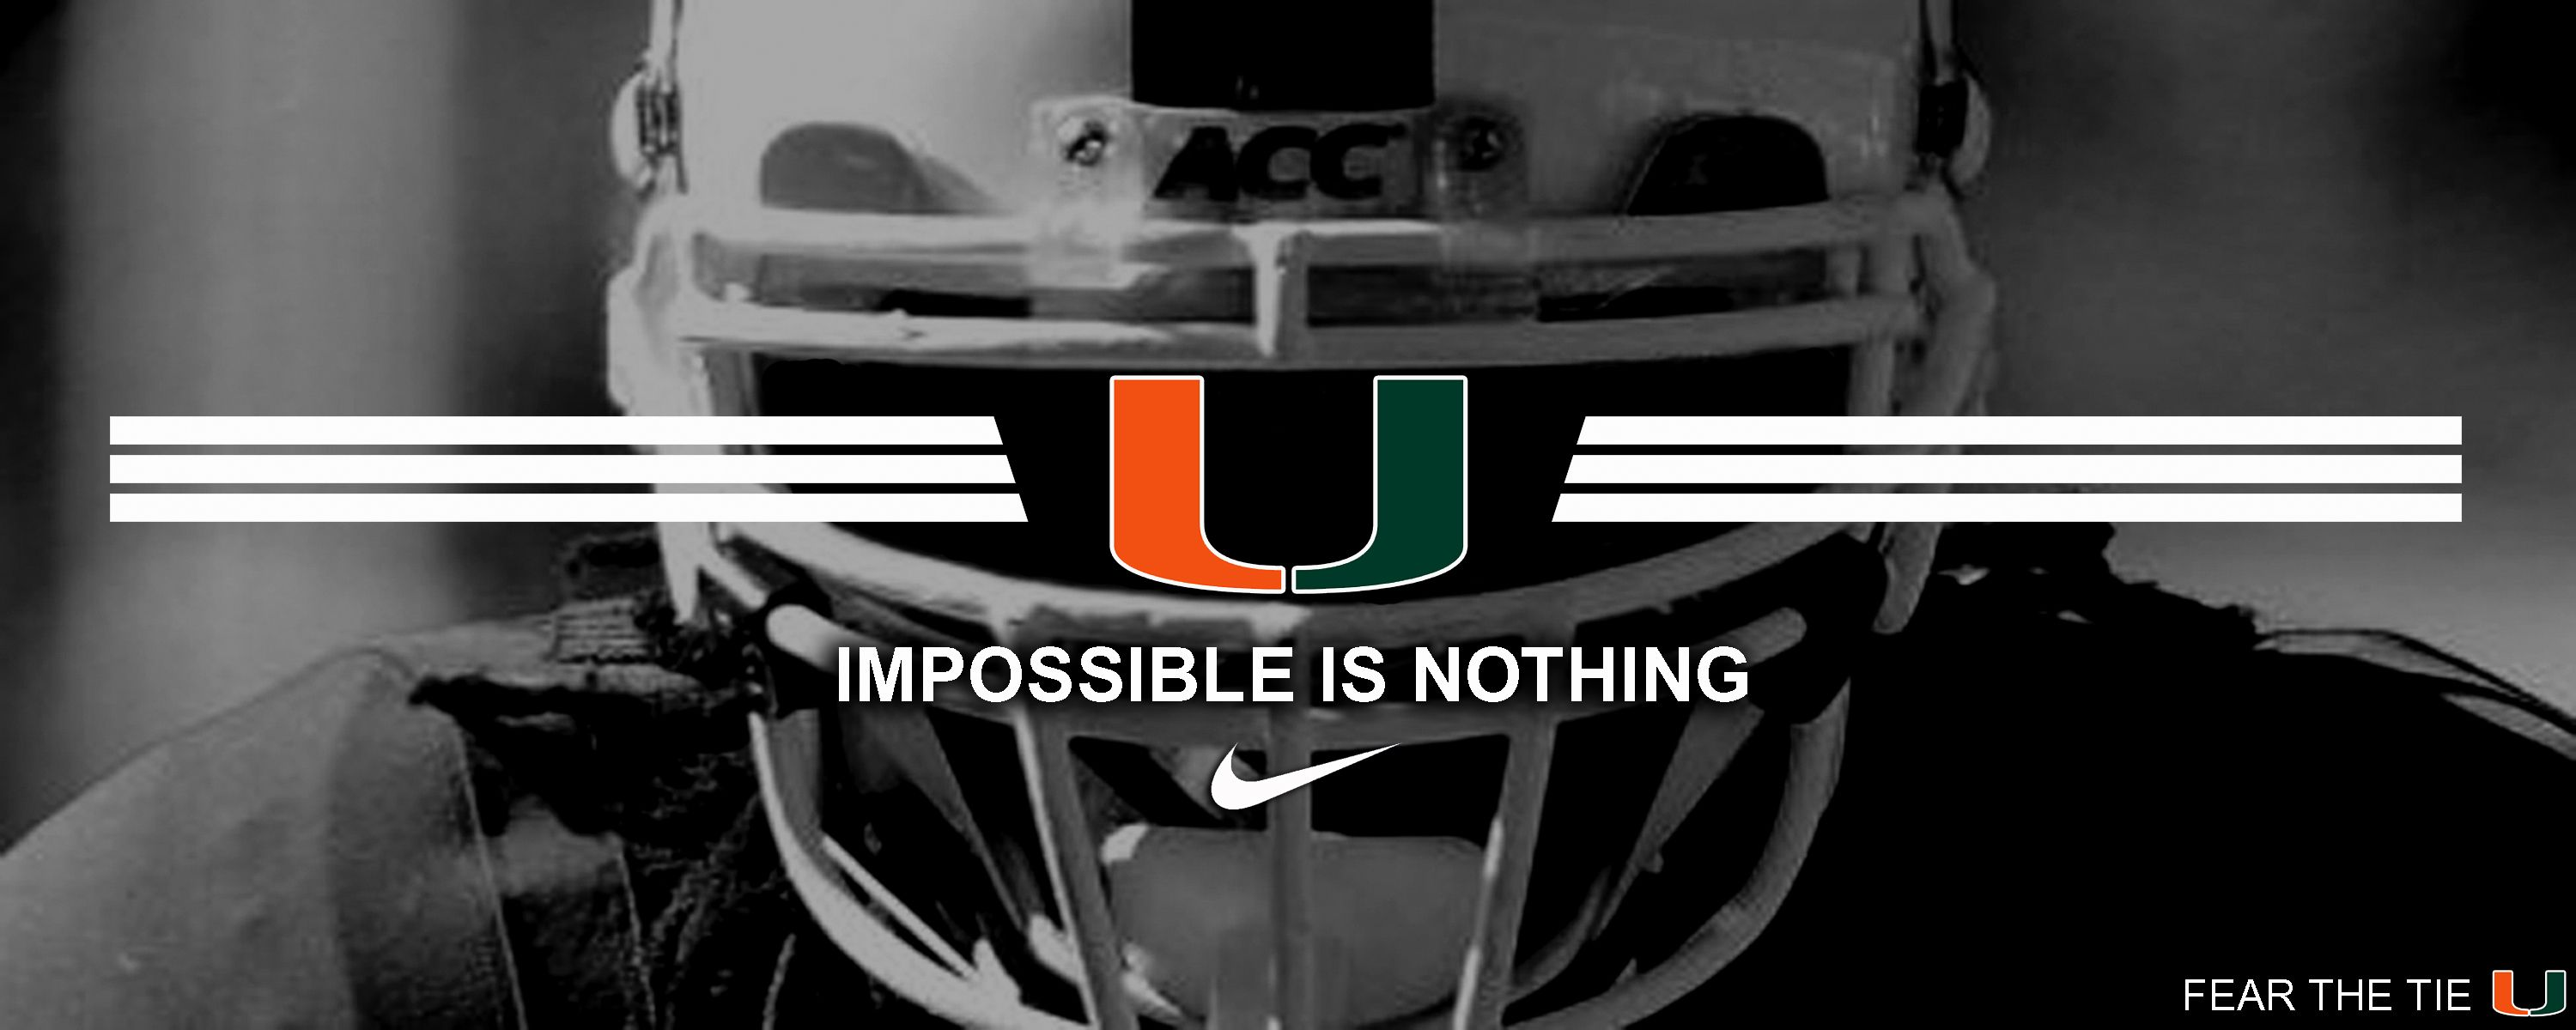 Miami Hurricanes HD Wallpaper - WallpaperSafari